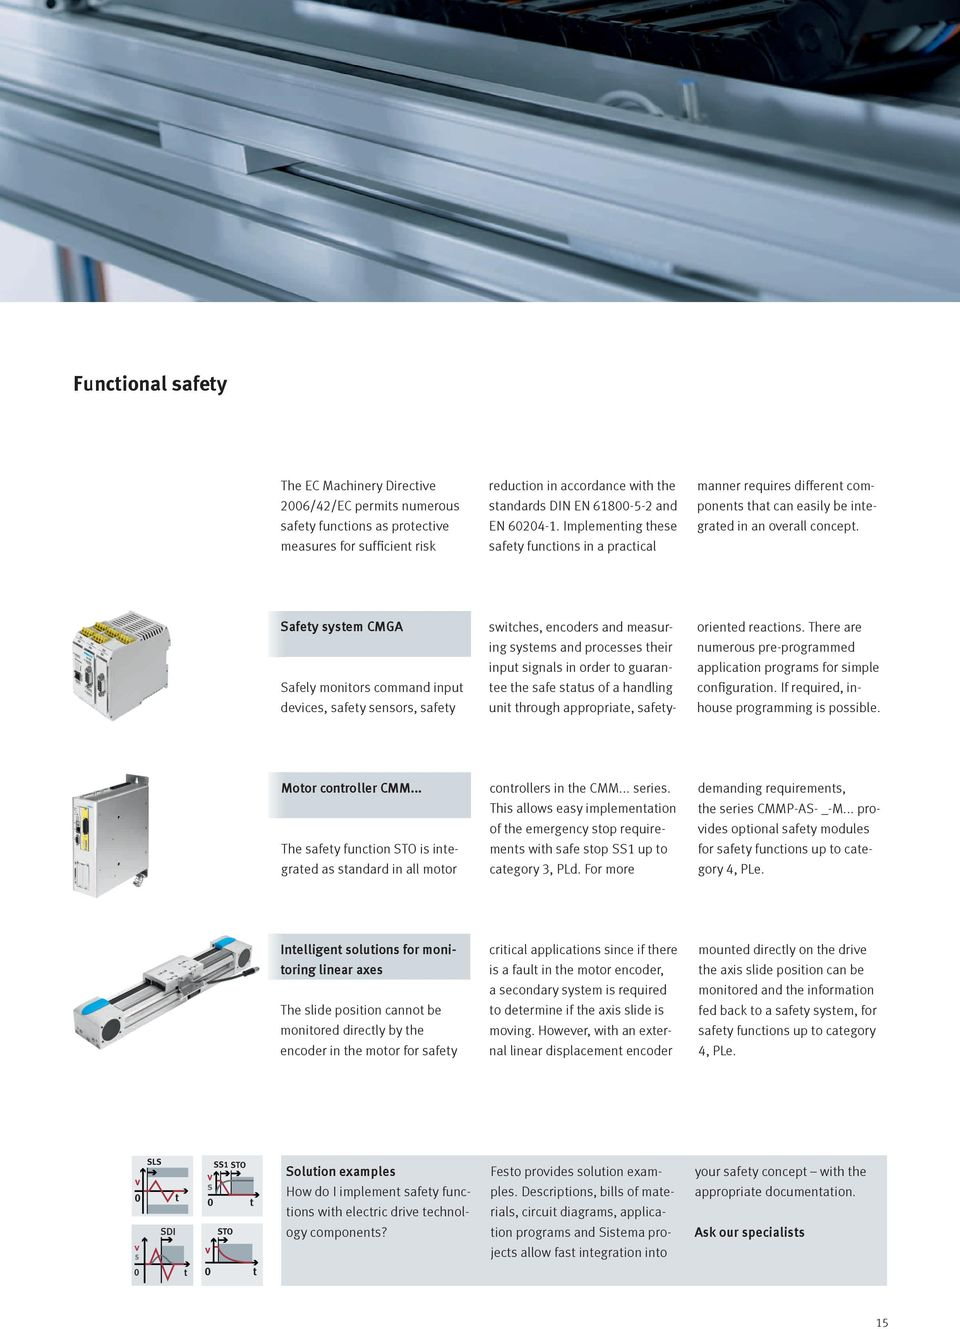 Safety system CMGA Safely monitors command input devices, safety sensors, safety switches, encoders and measuring systems and processes their input signals in order to guarantee the safe status of a